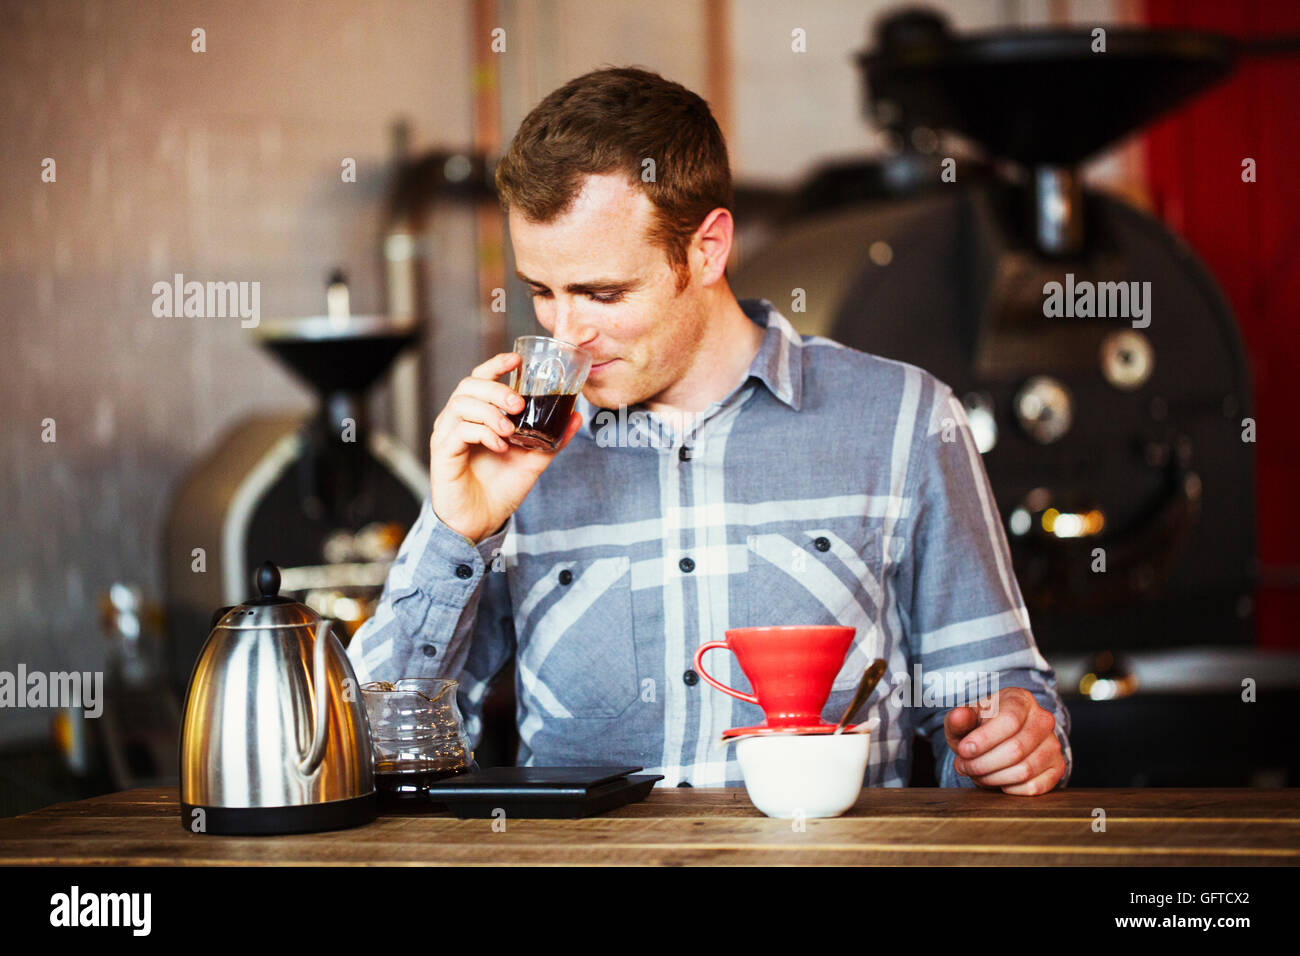 A man brewing coffee using a filter paper and drinking it - Stock Image